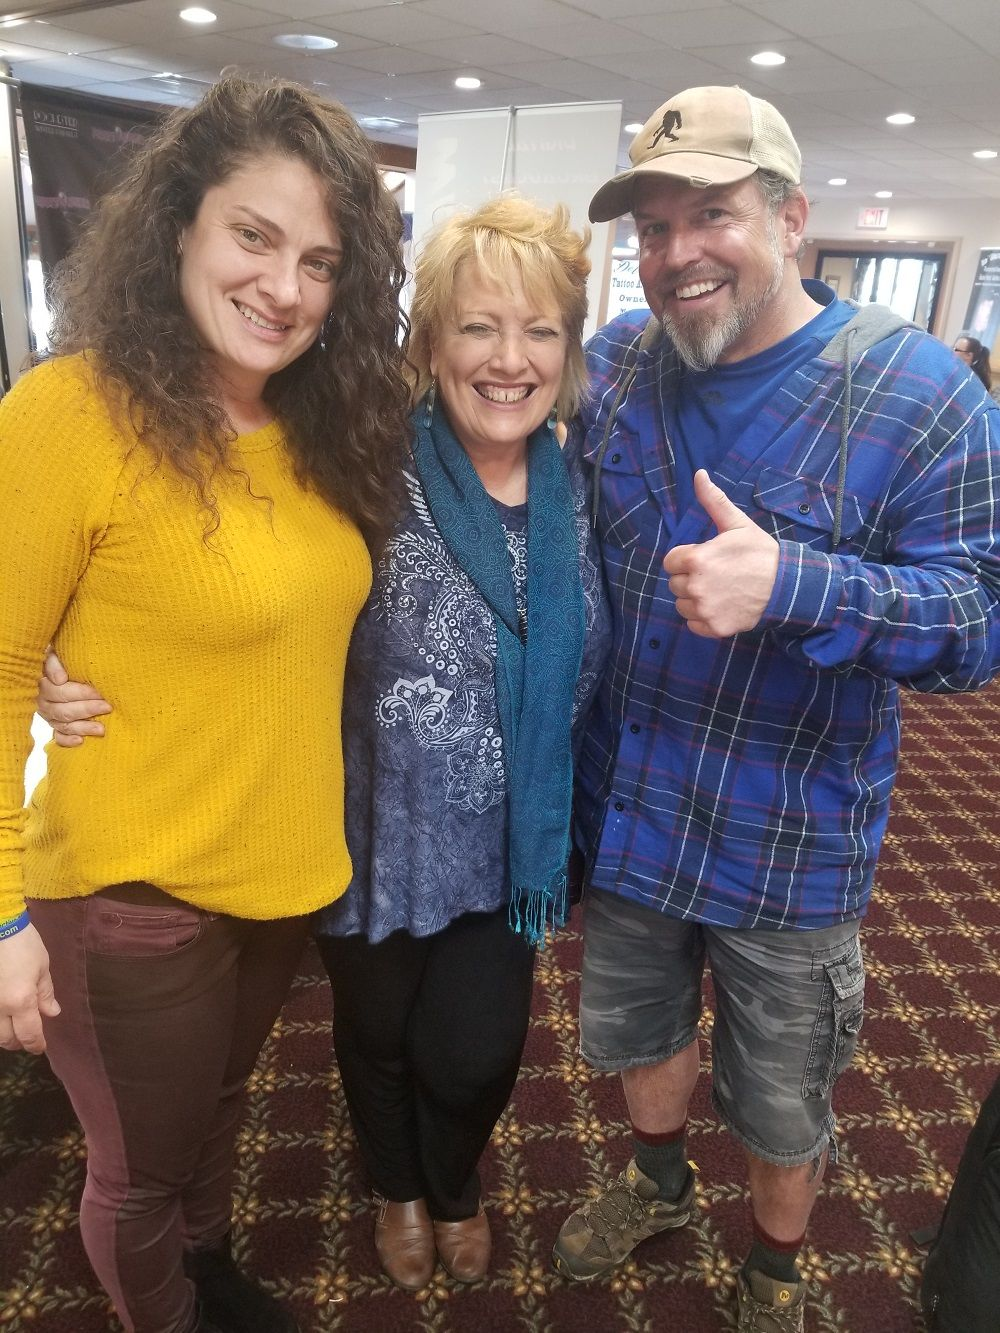 Haunted Journeys' Maria Schmidt celebrating a great weekend with Melanie Rauscher and Trent Nielson from Naked and Afraid!